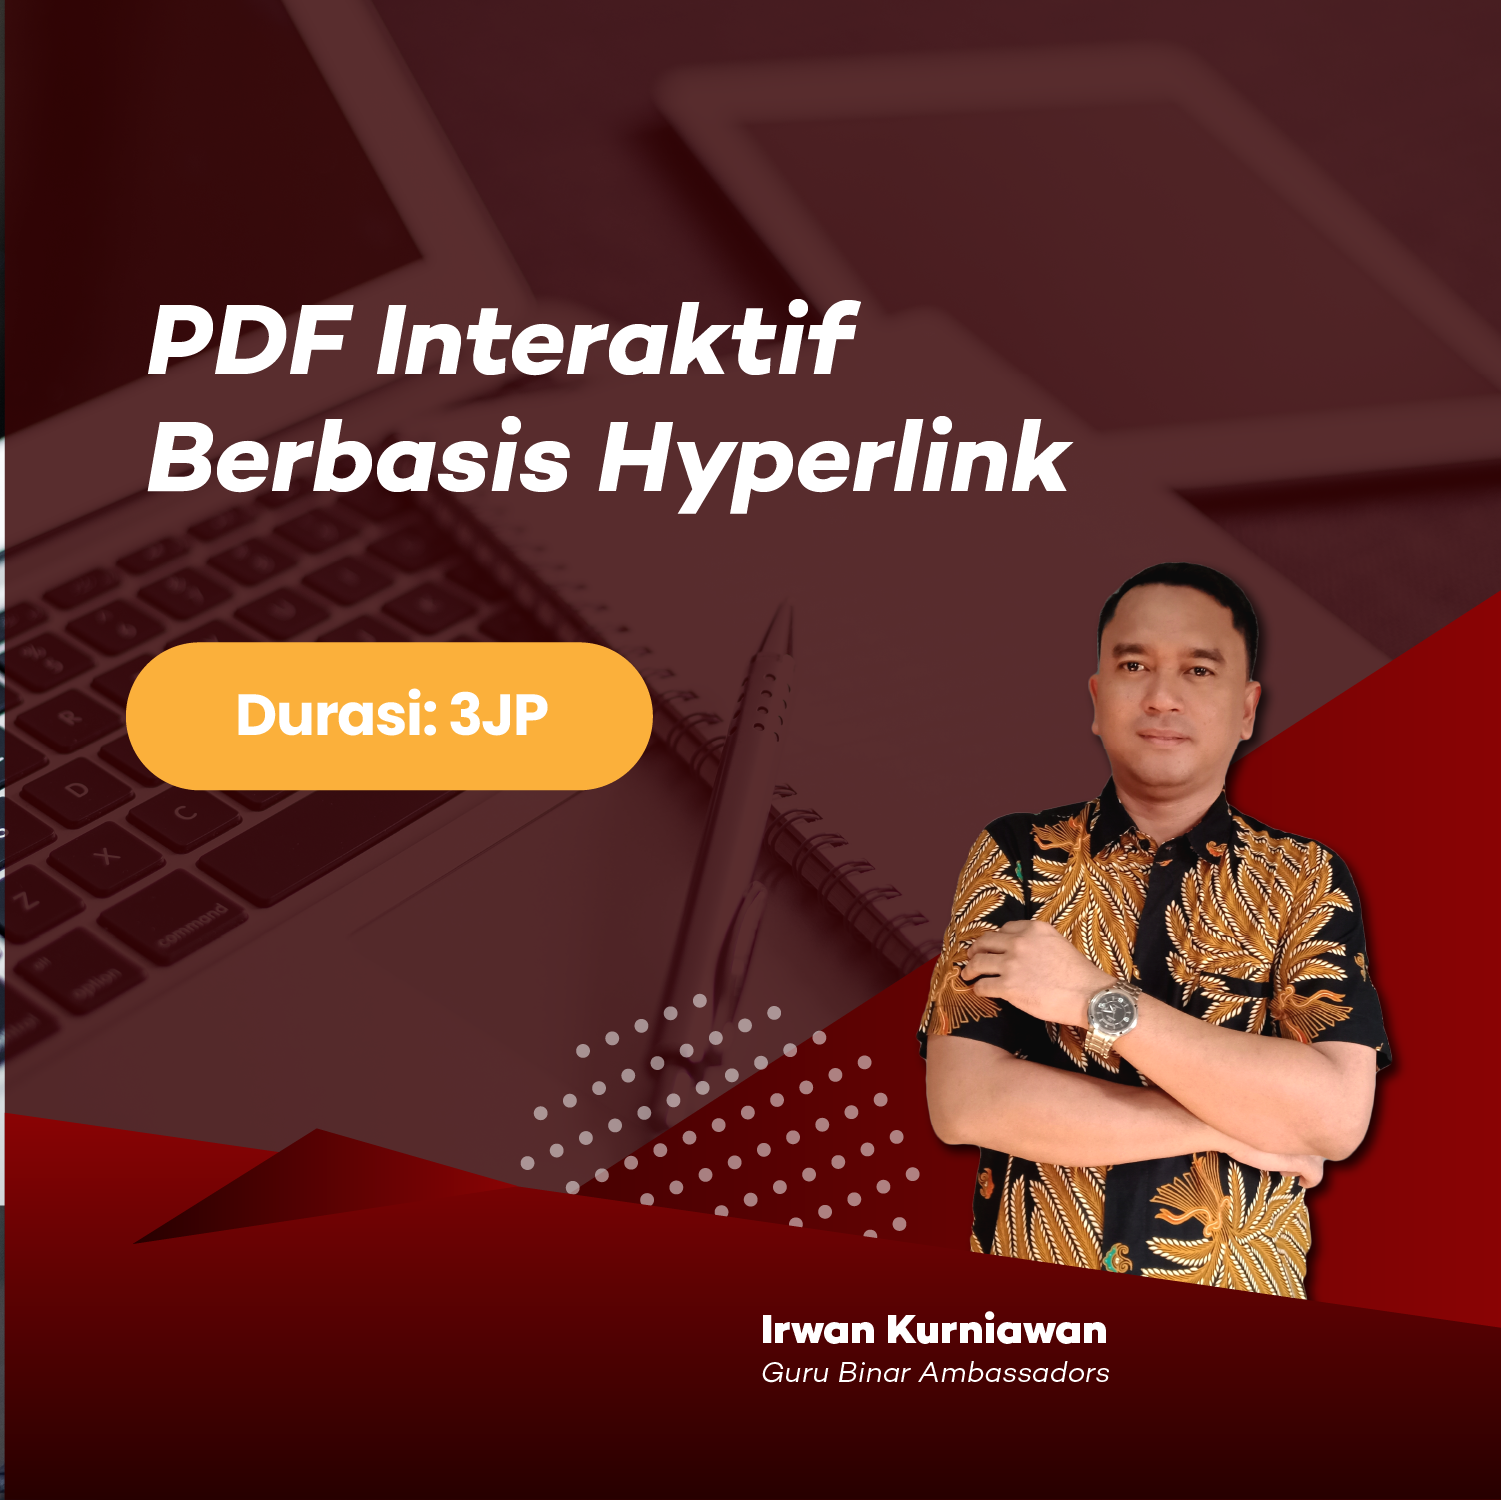 Photo PDF Interaktif Berbasis Hyperlink